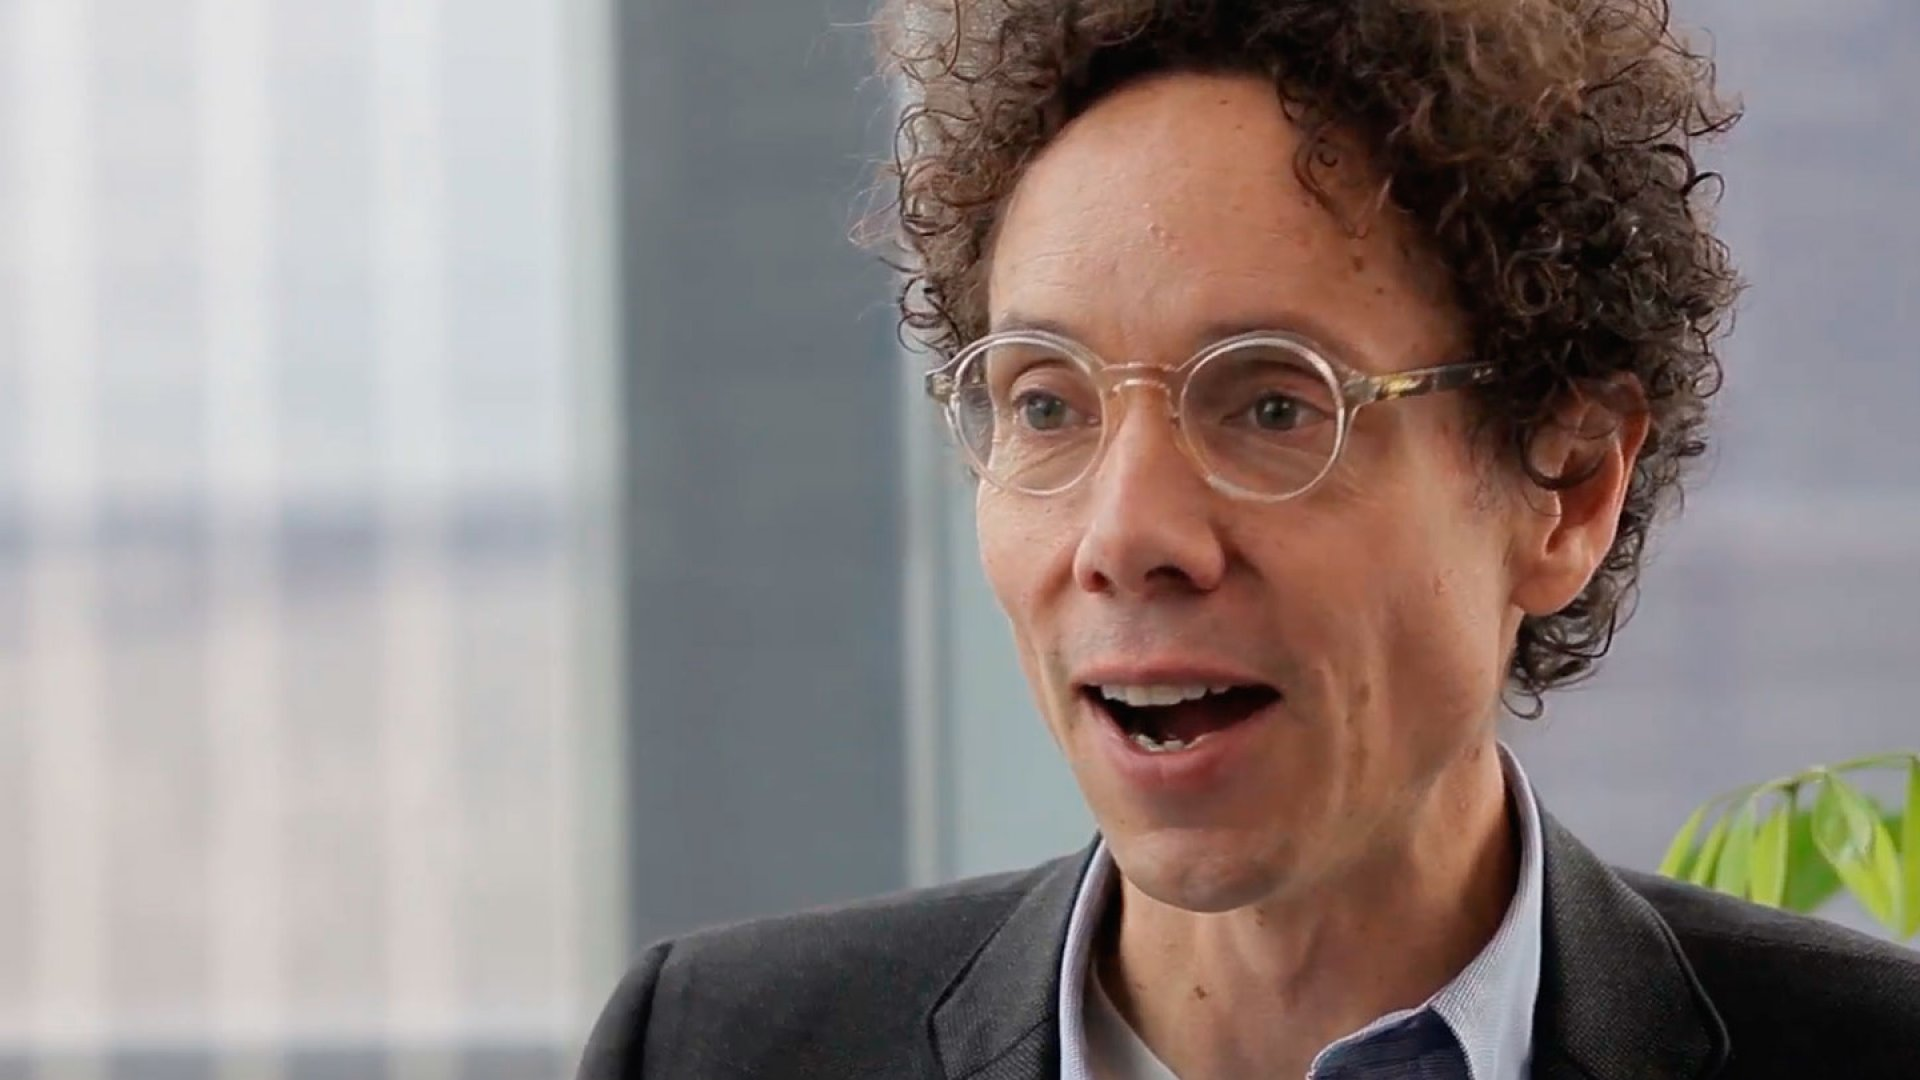 Malcolm Gladwell on How Entrepreneurs Learn to Be Bold